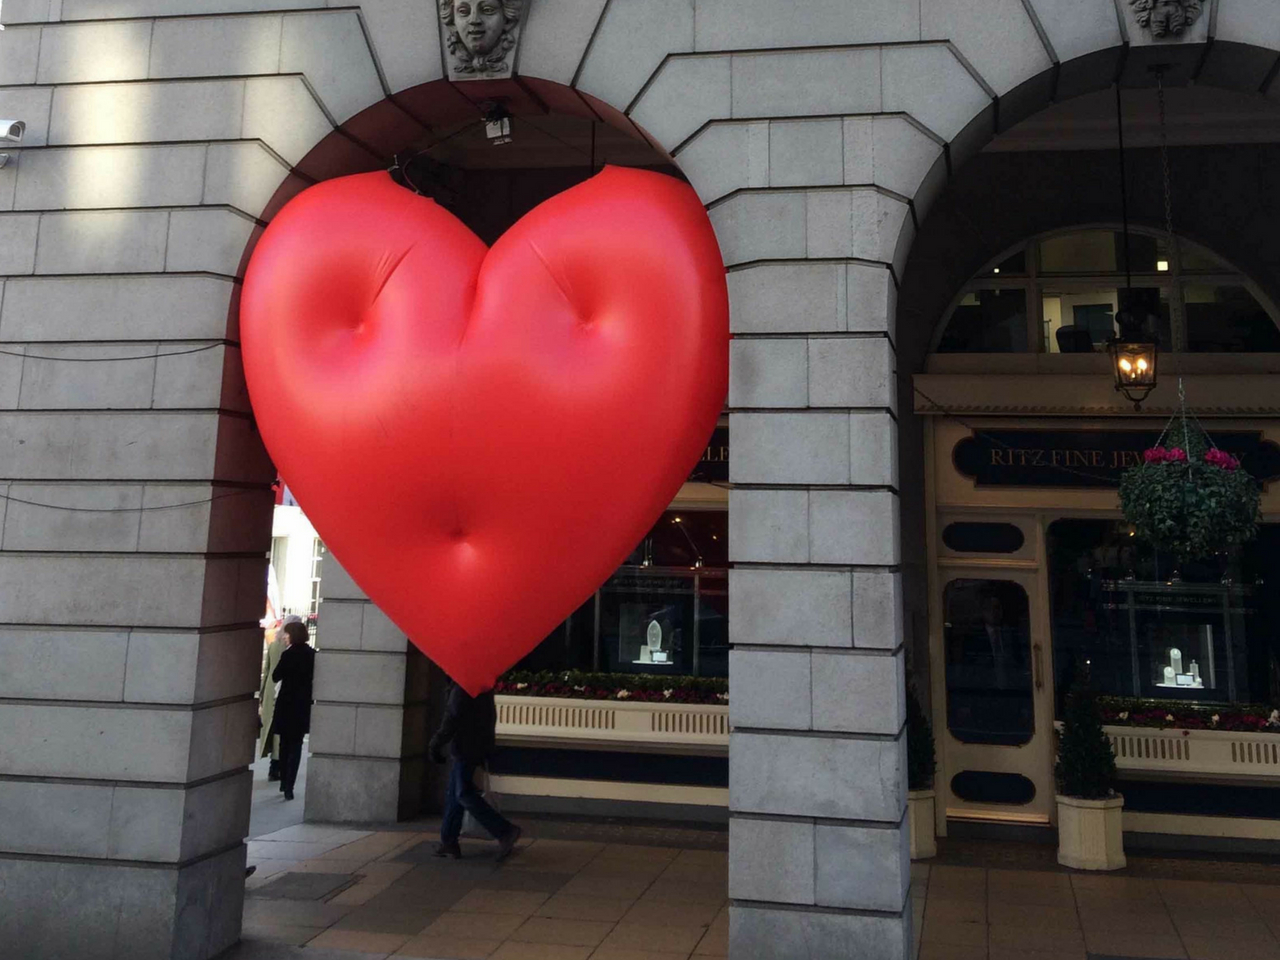 inflatable chubby heart squashed in archway